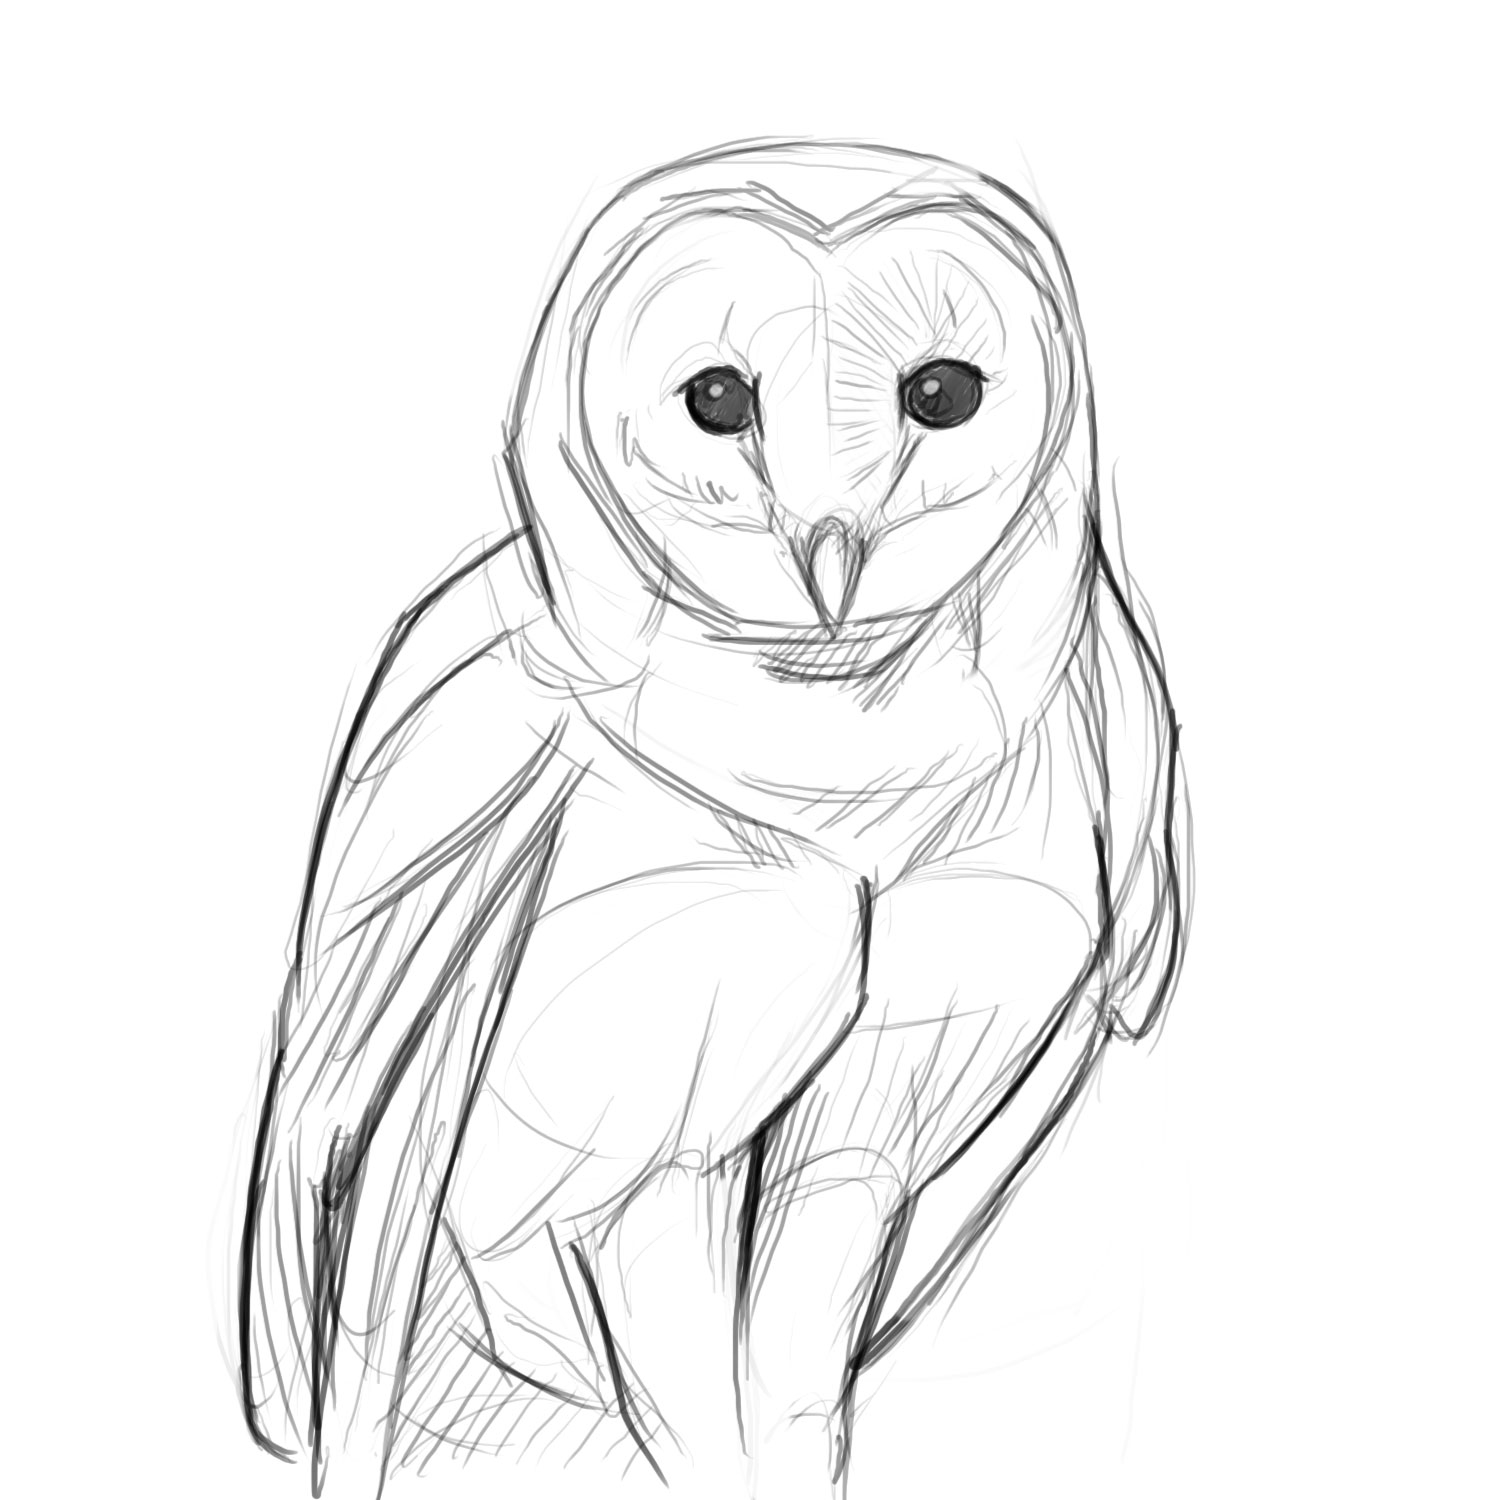 1500x1500 Quick Sketch Of Barn Owl Owl Sketches Owl Sketch